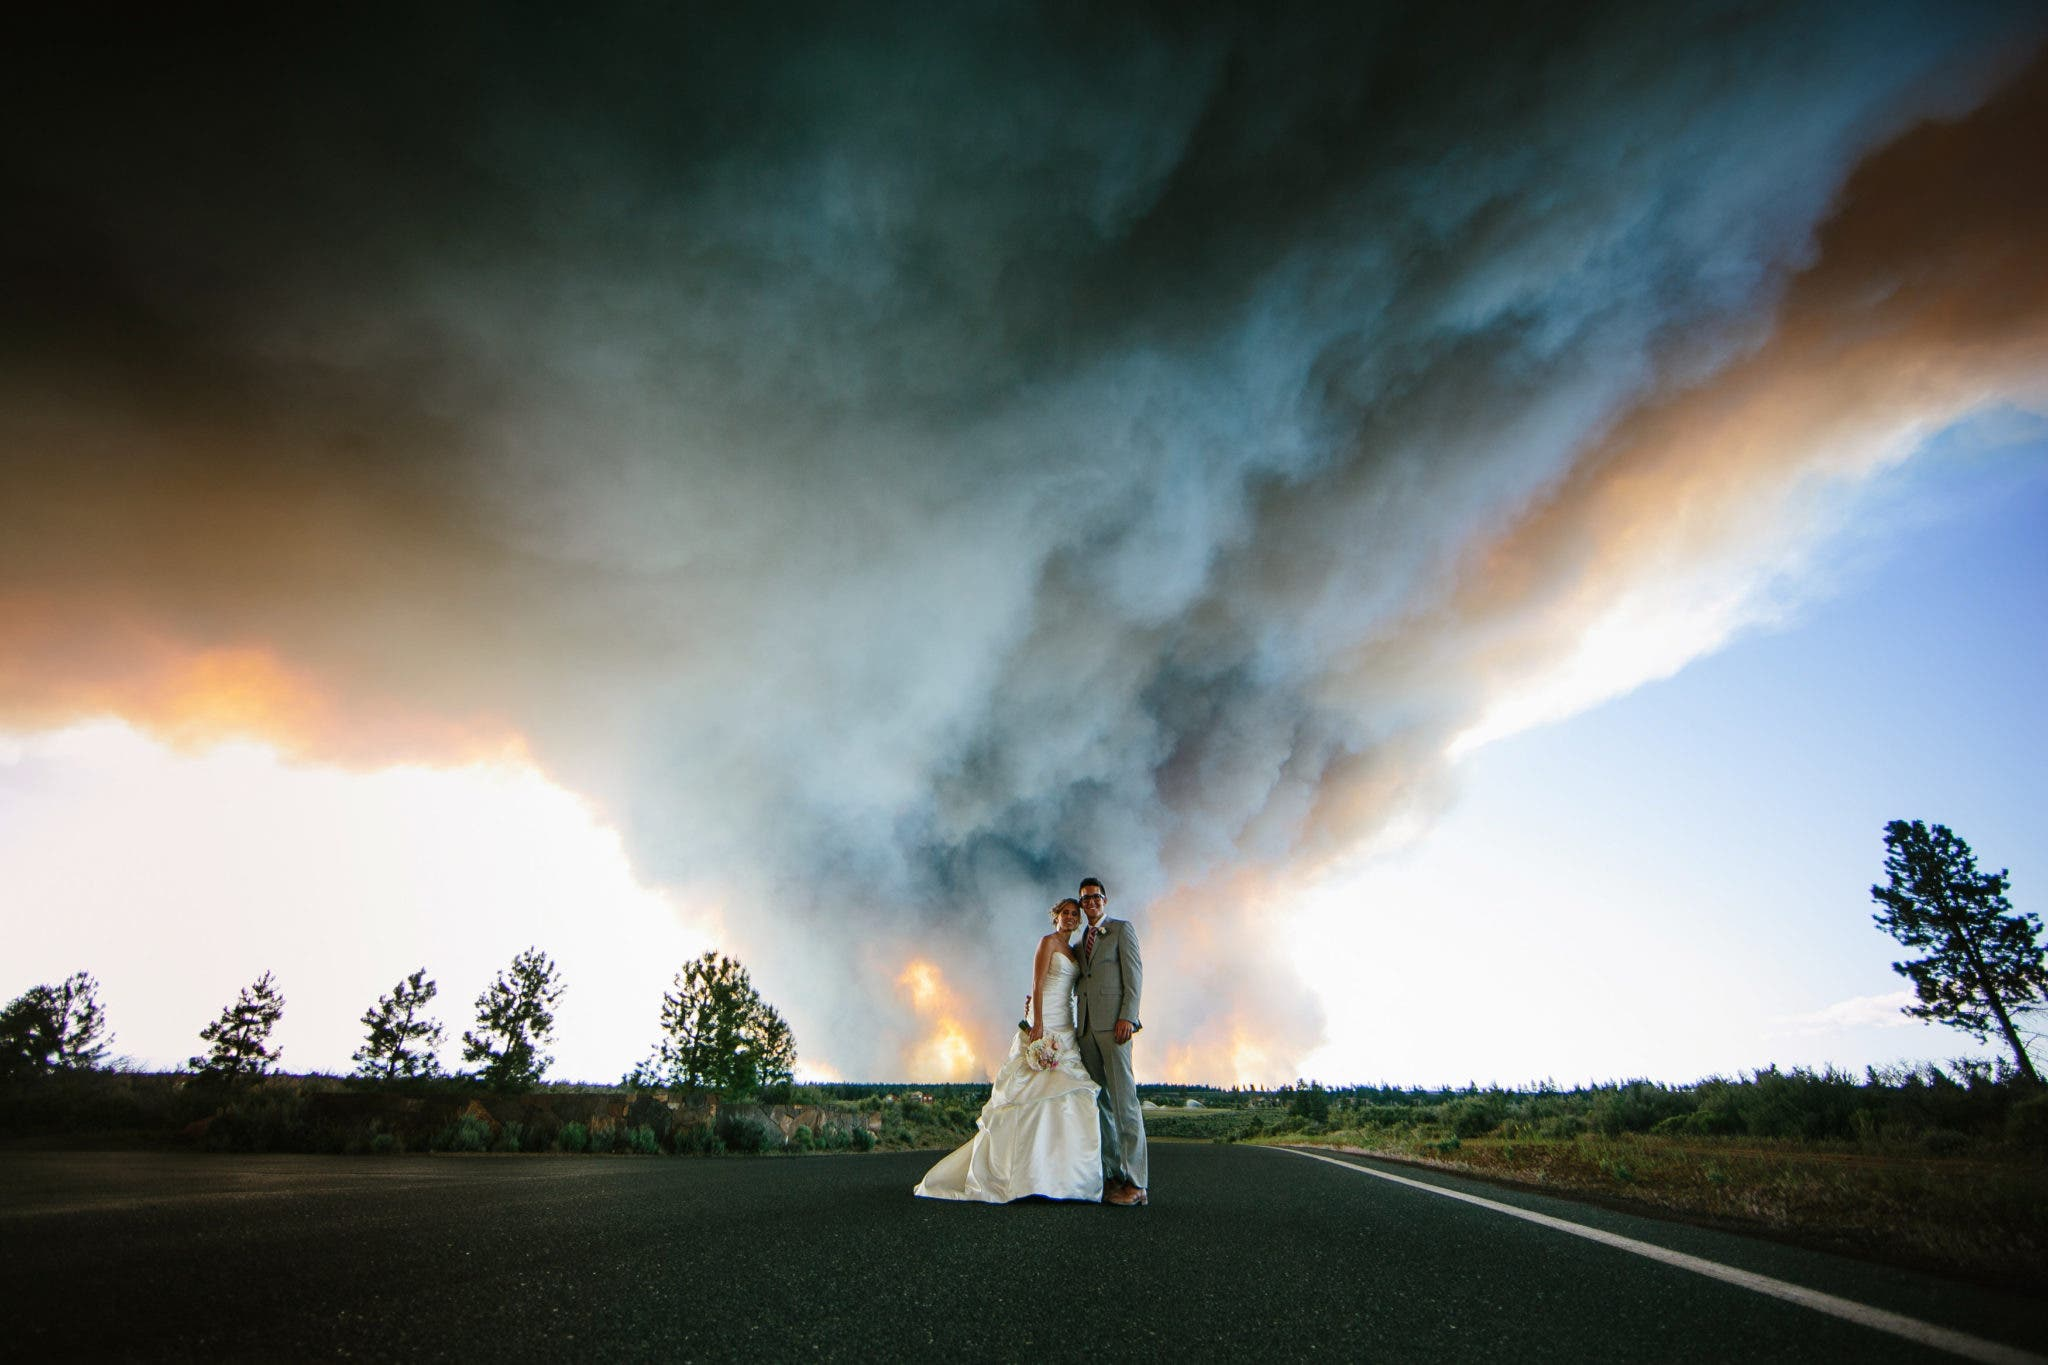 wedding photographer turns approaching wildfire into newlyweds 39 photographic gold the. Black Bedroom Furniture Sets. Home Design Ideas